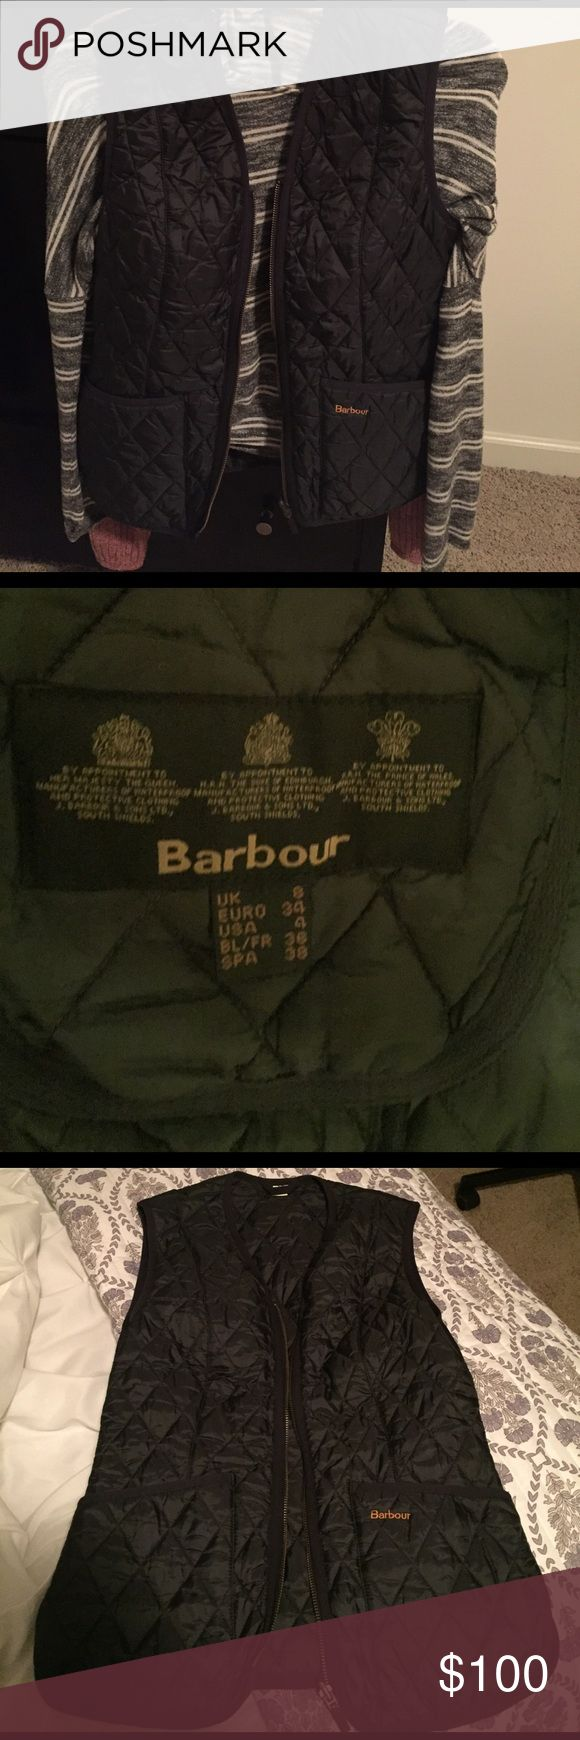 Barely Worn Barbour Vest Navy Blue Barbour Jackets & Coats Vests